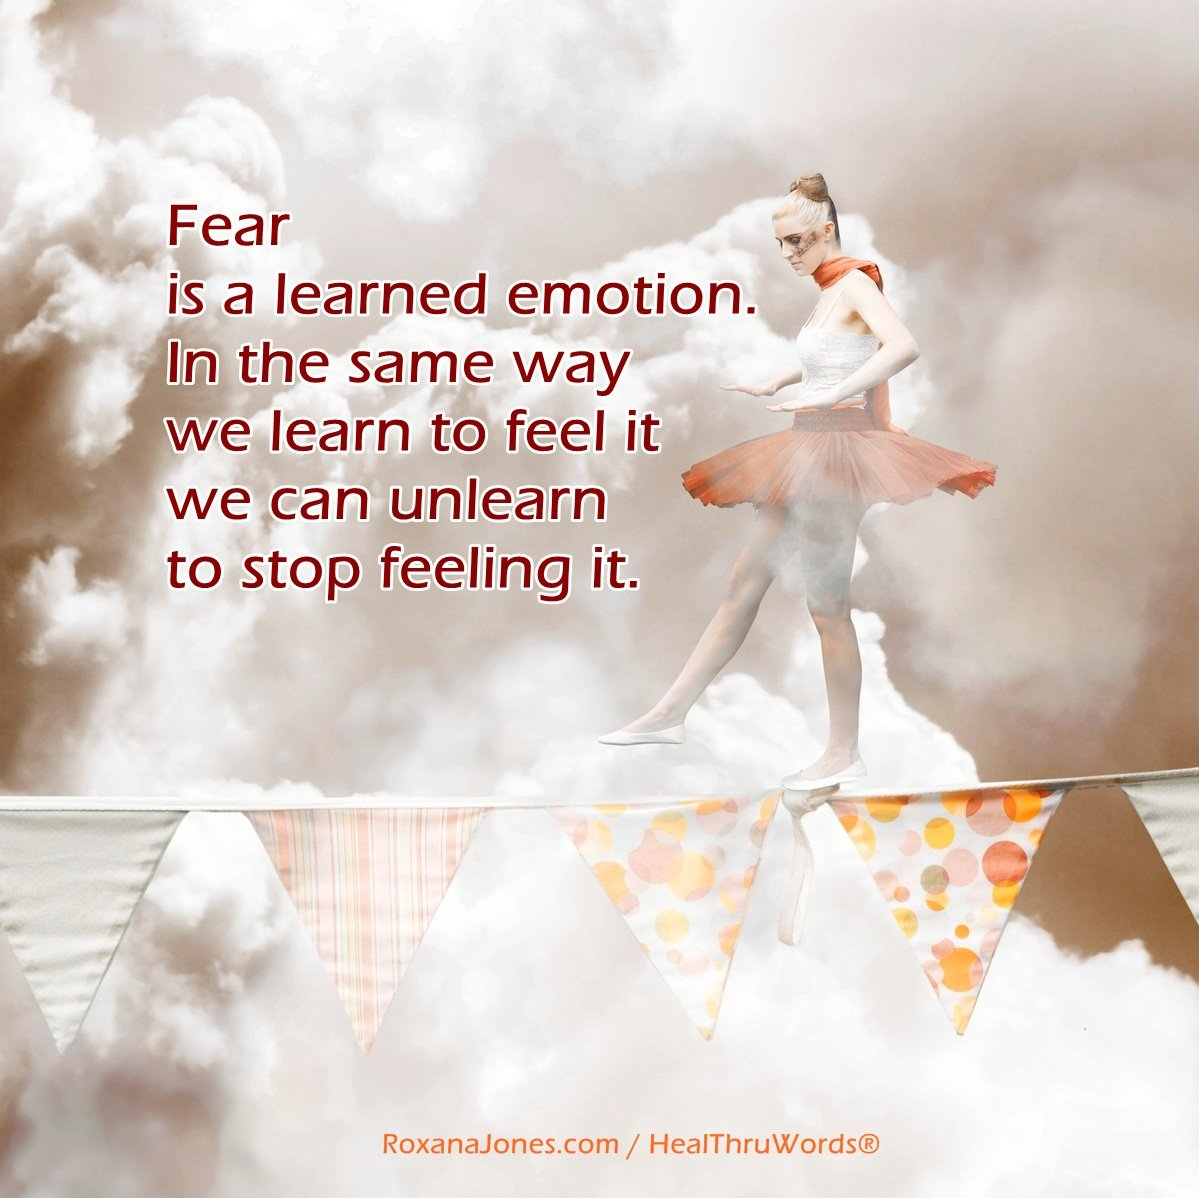 Inspirational Image: Learned Fear